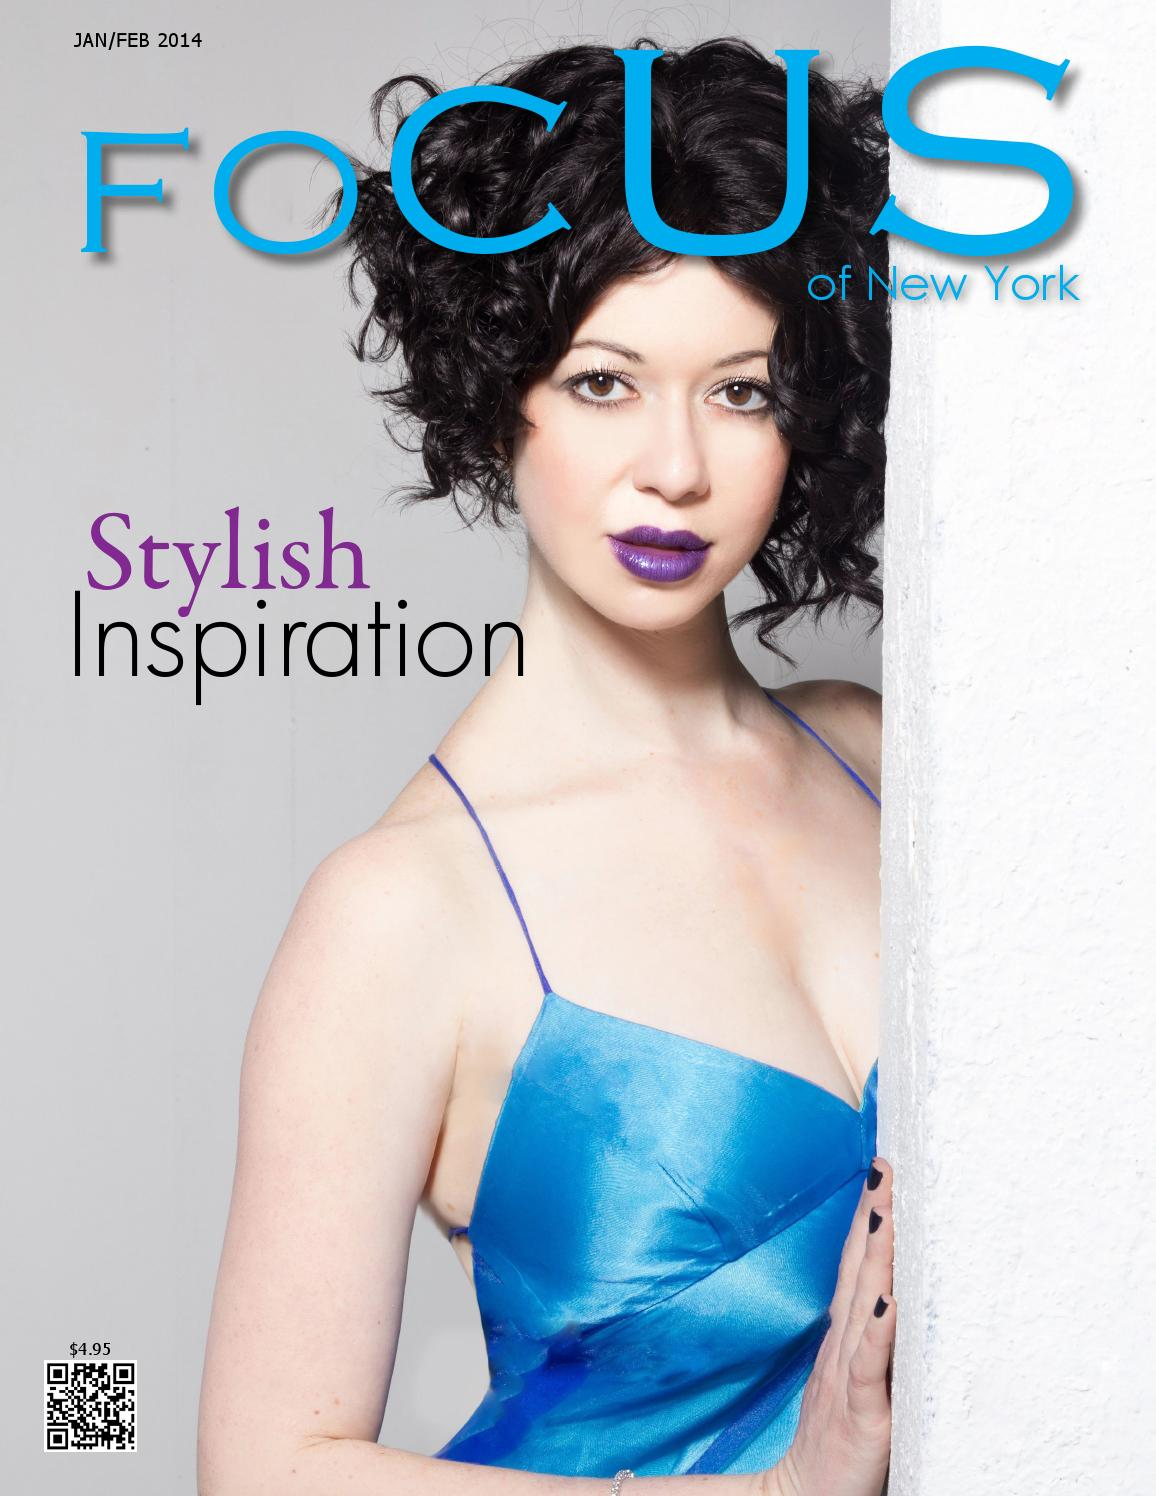 Focus Of New York Stylish Inspiration By Magazine Softlens Diva Queen One Layer With Clear Vision Issuu